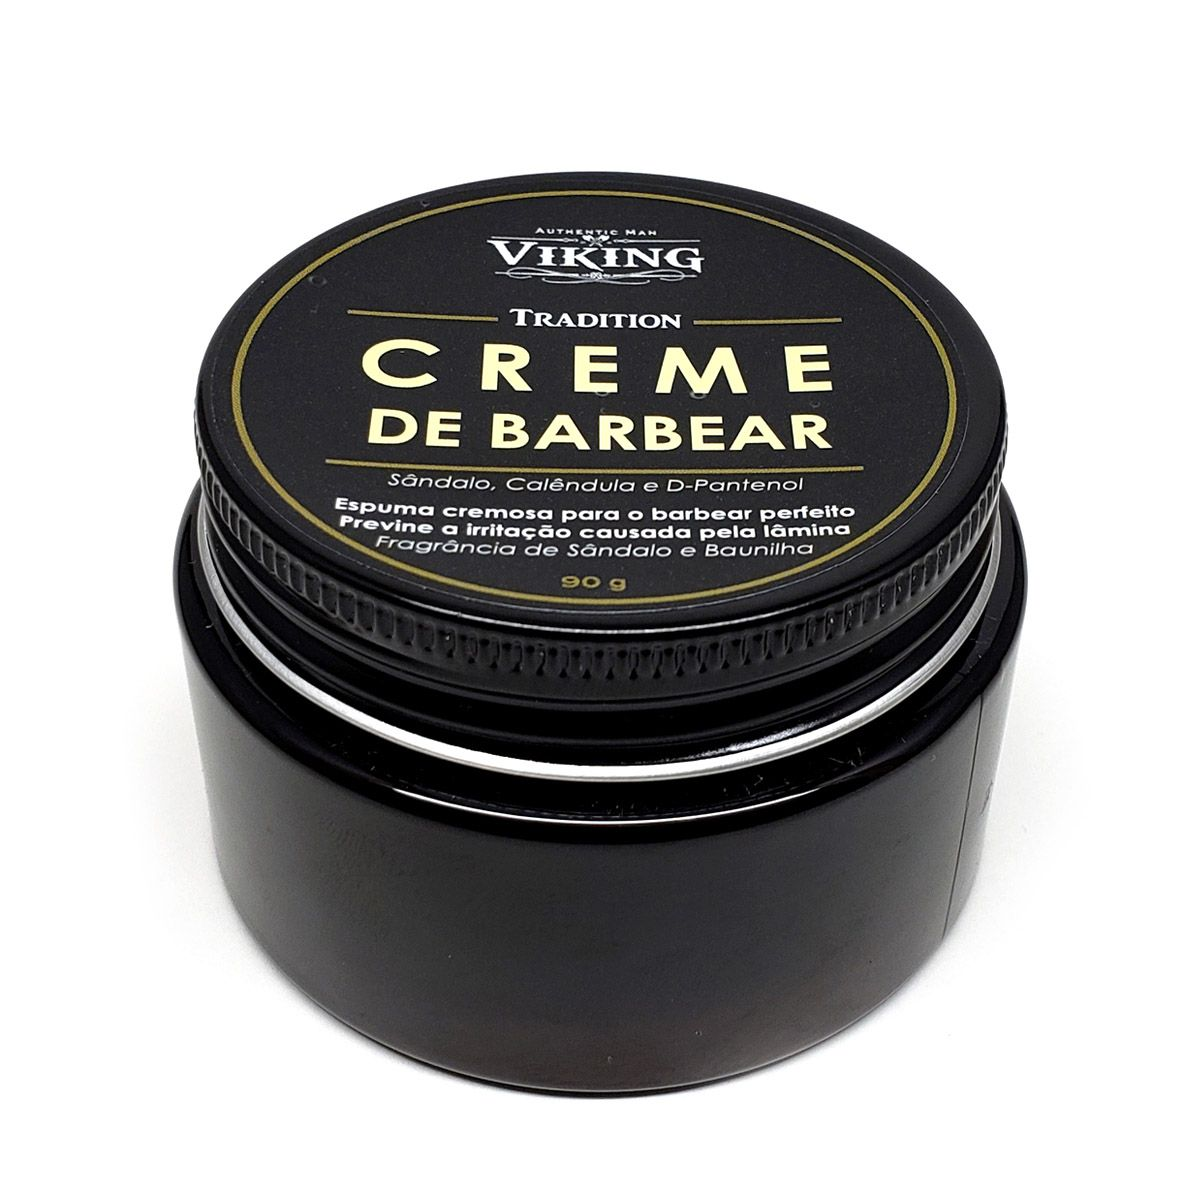 Creme de Barbear - Tradition - Viking  - Viking